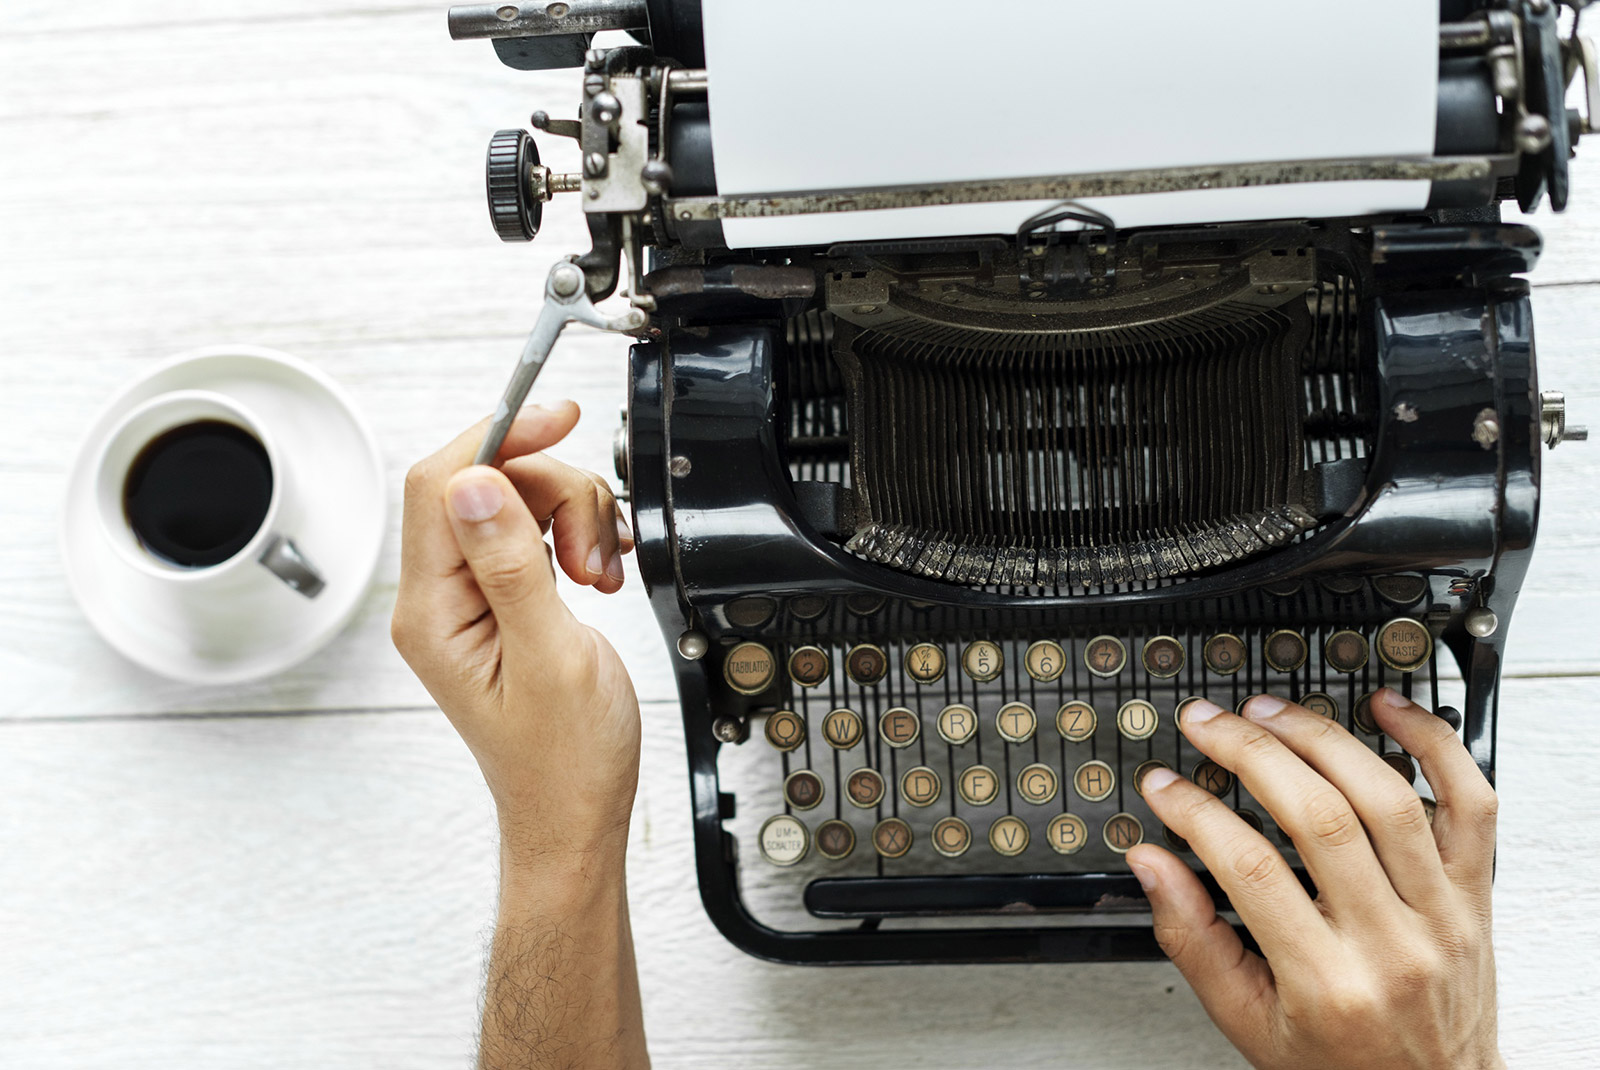 Person using typewriter with a cup of coffee to the side